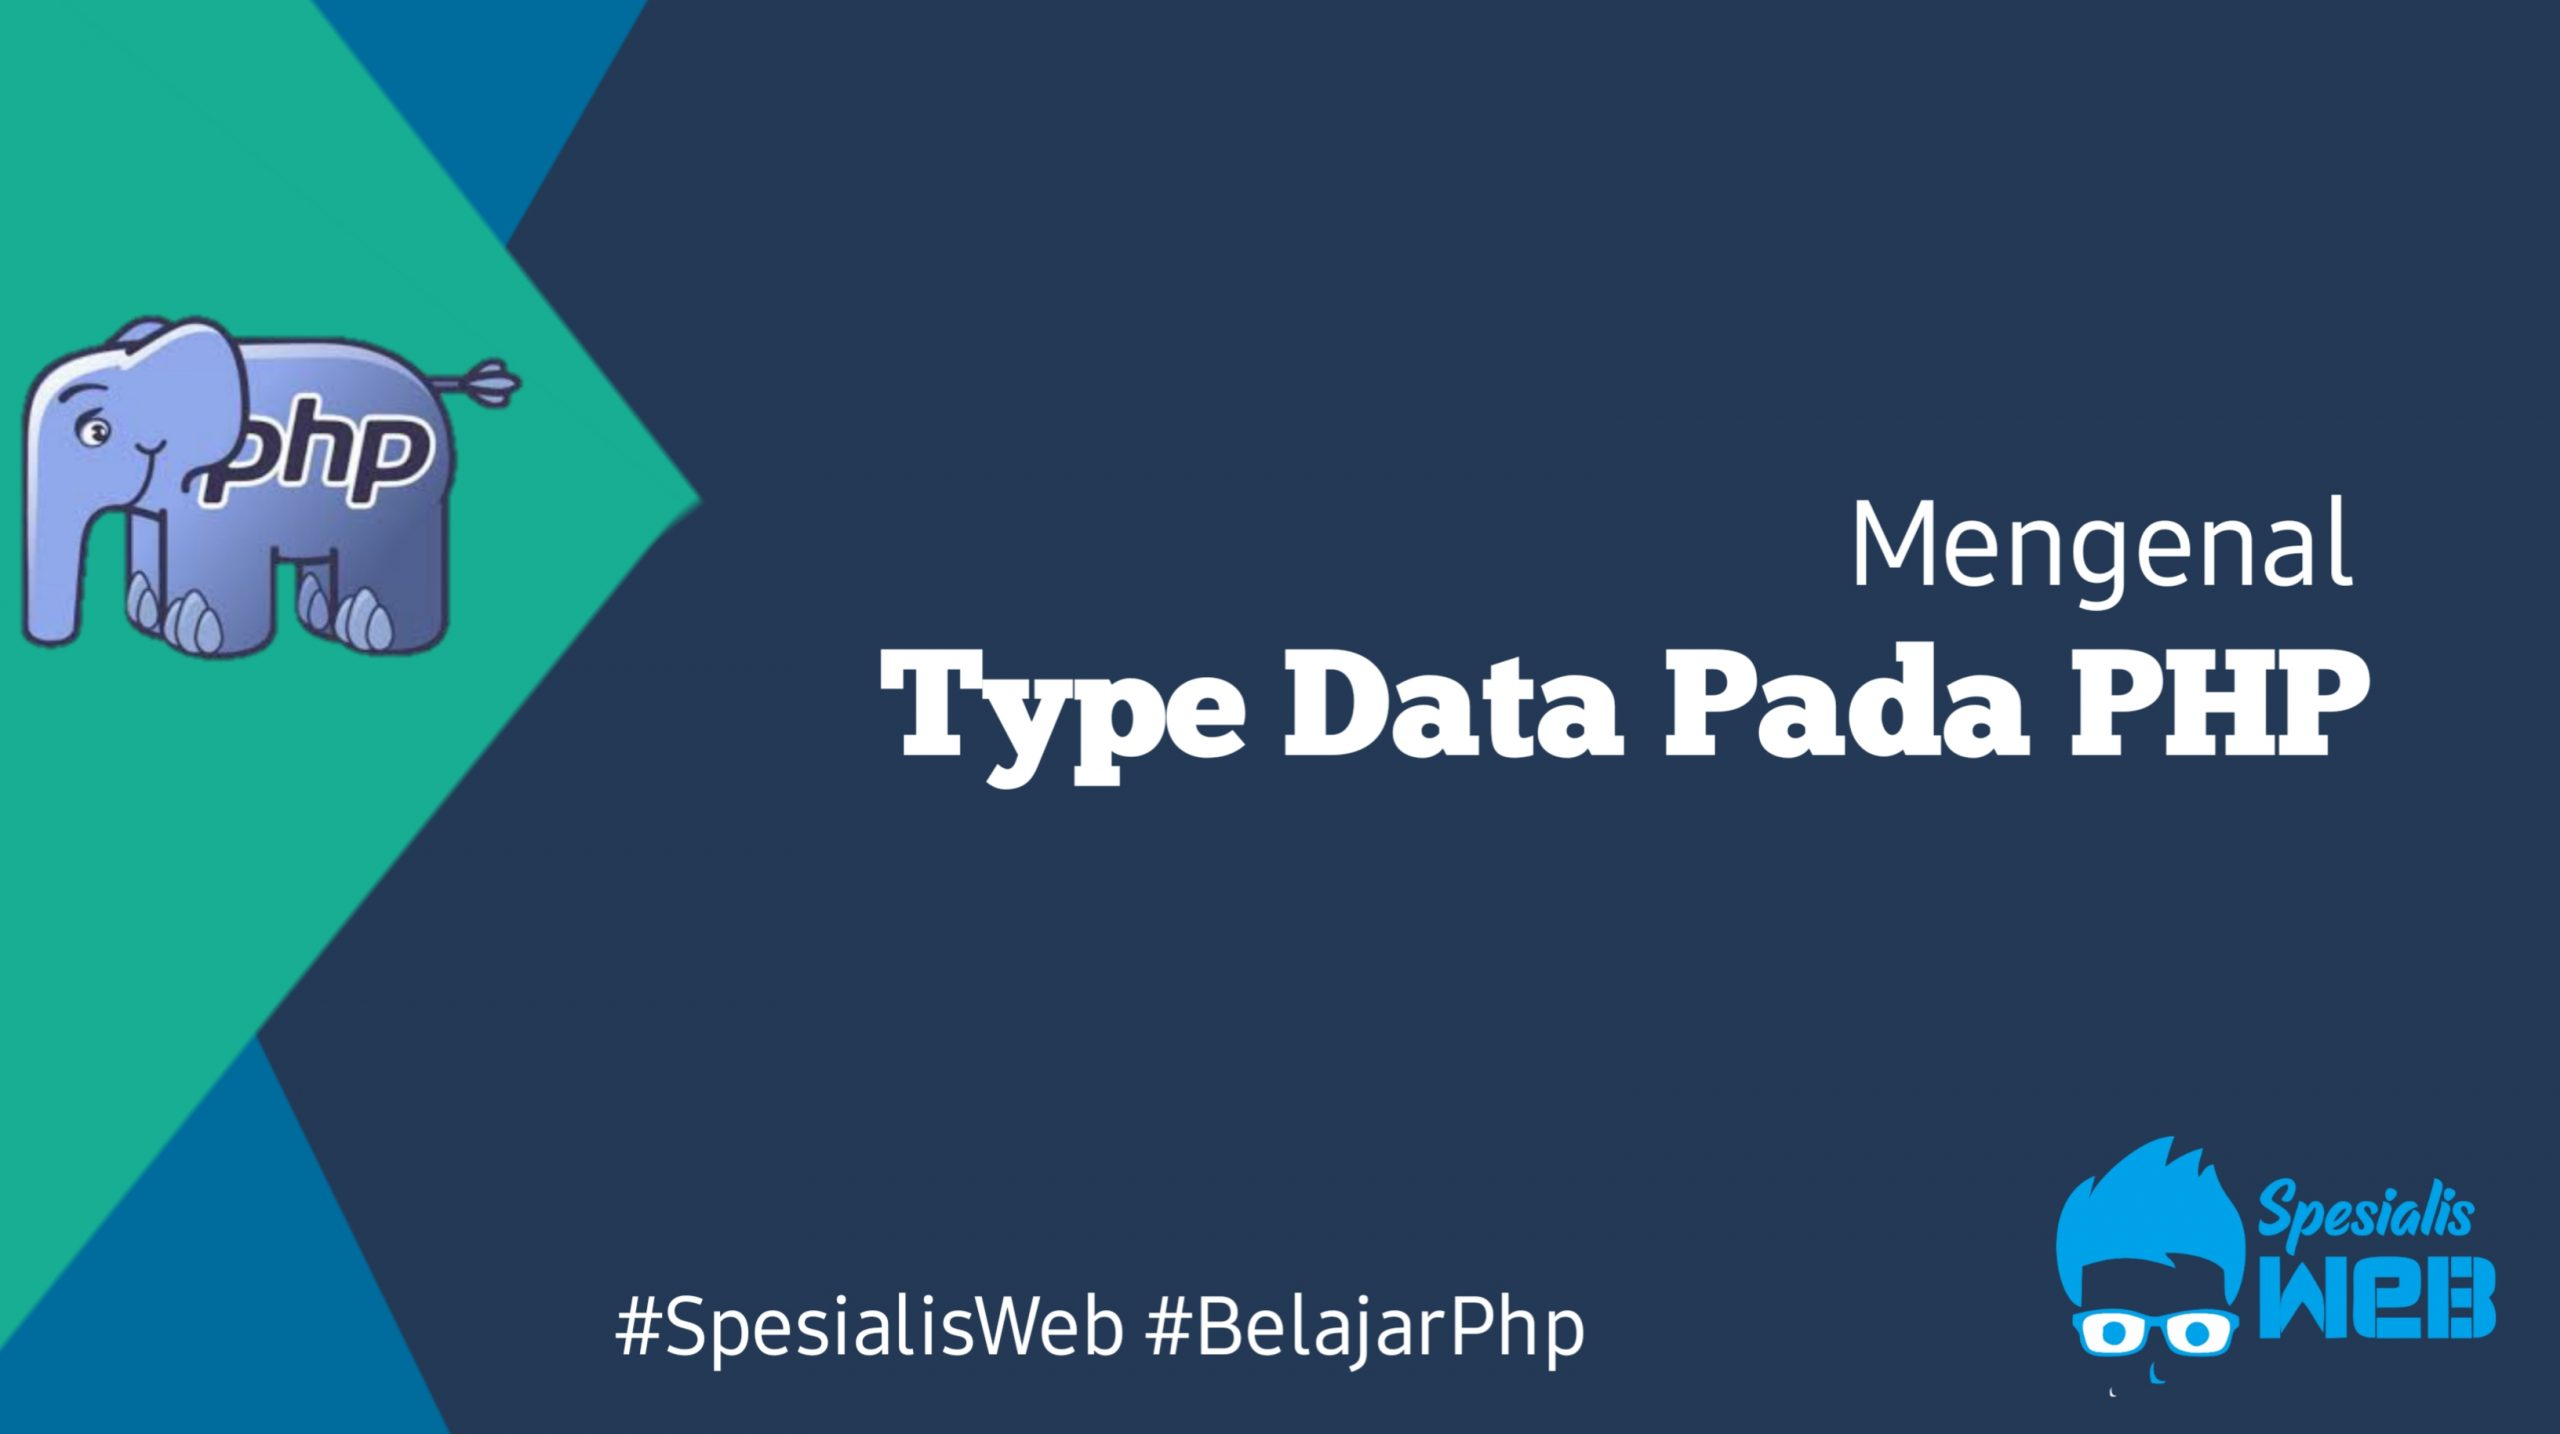 Type Data Pada PHP